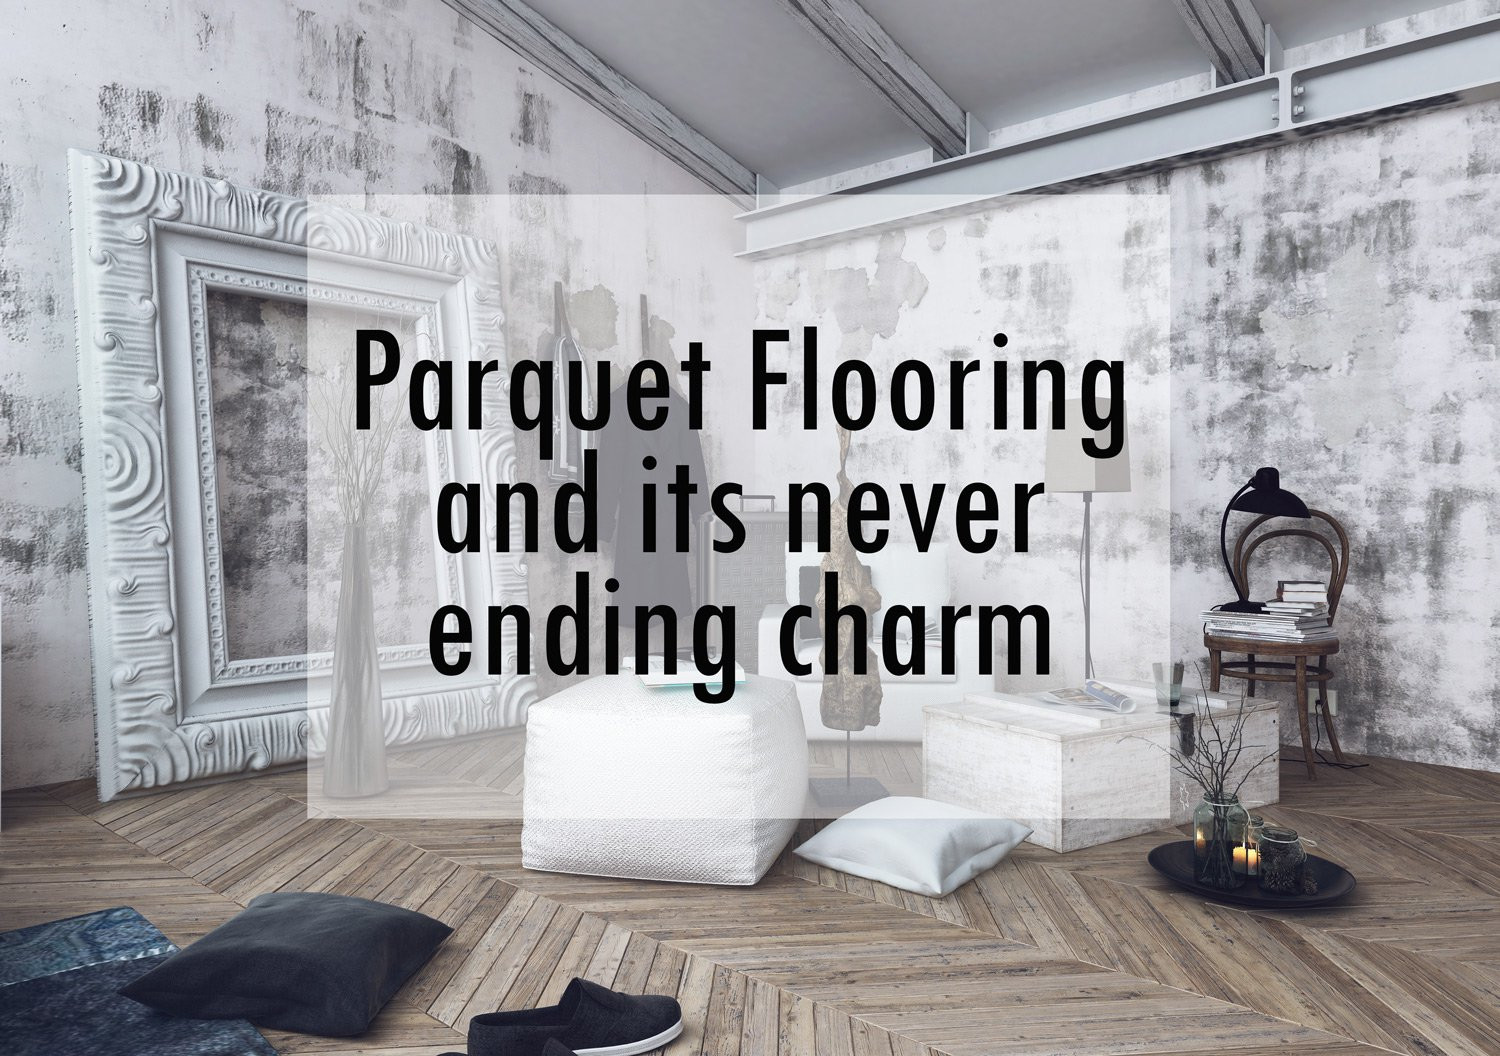 10 Awesome Hardwood Floor Lacquer Finish 2021 free download hardwood floor lacquer finish of about parquet flooring types and installation dengarden throughout 13317391